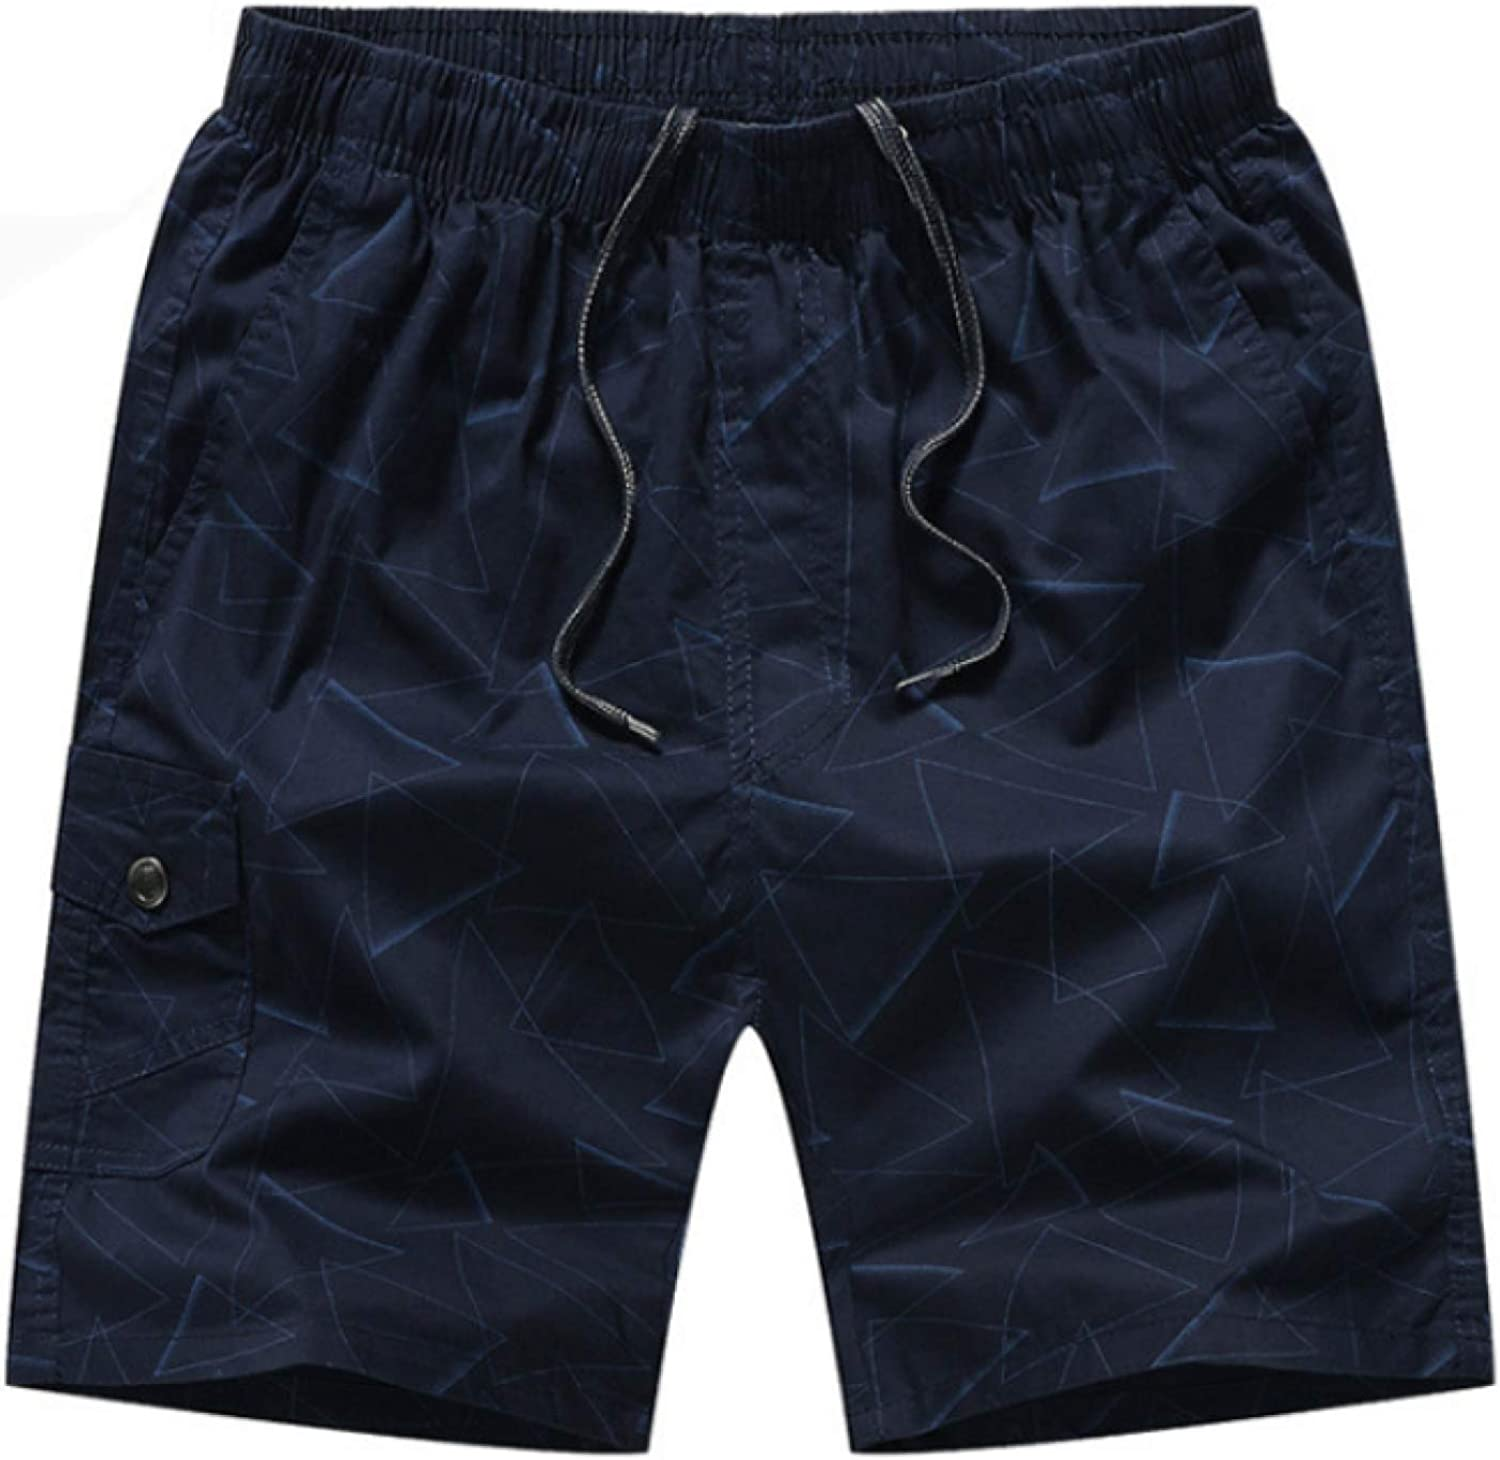 Men's Casual Shorts Summer Breathable Wa Comfortable Ranking Limited Special Price TOP5 Elasticated